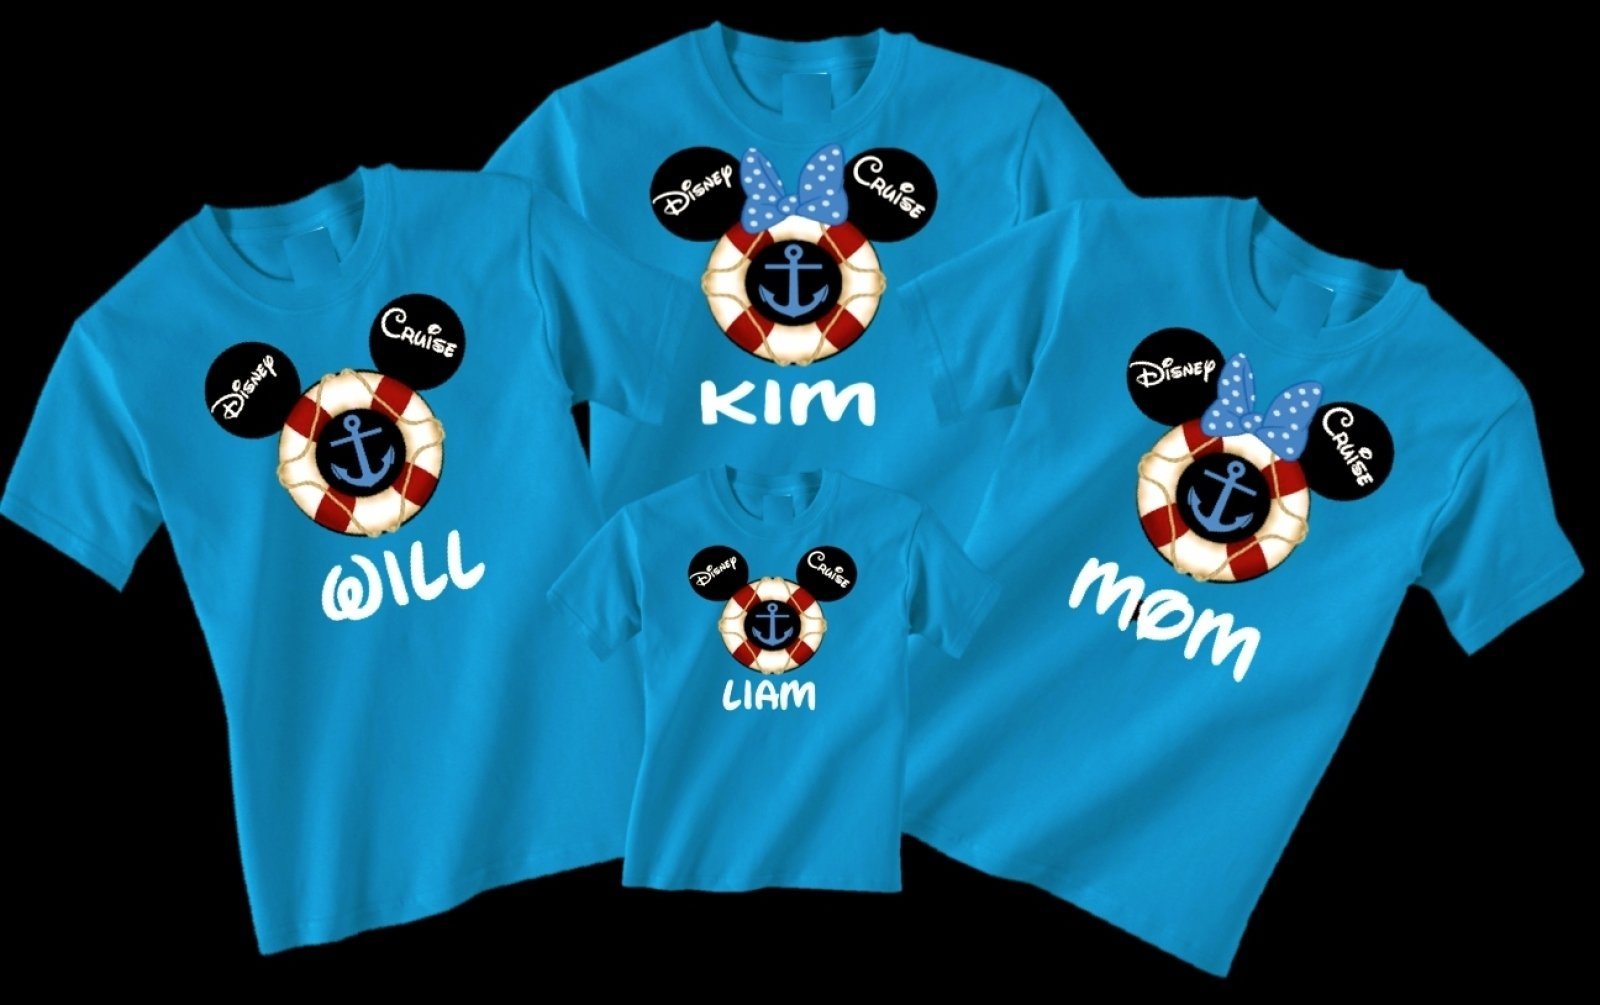 disney cruise family vacation t shirts | the official site of logan